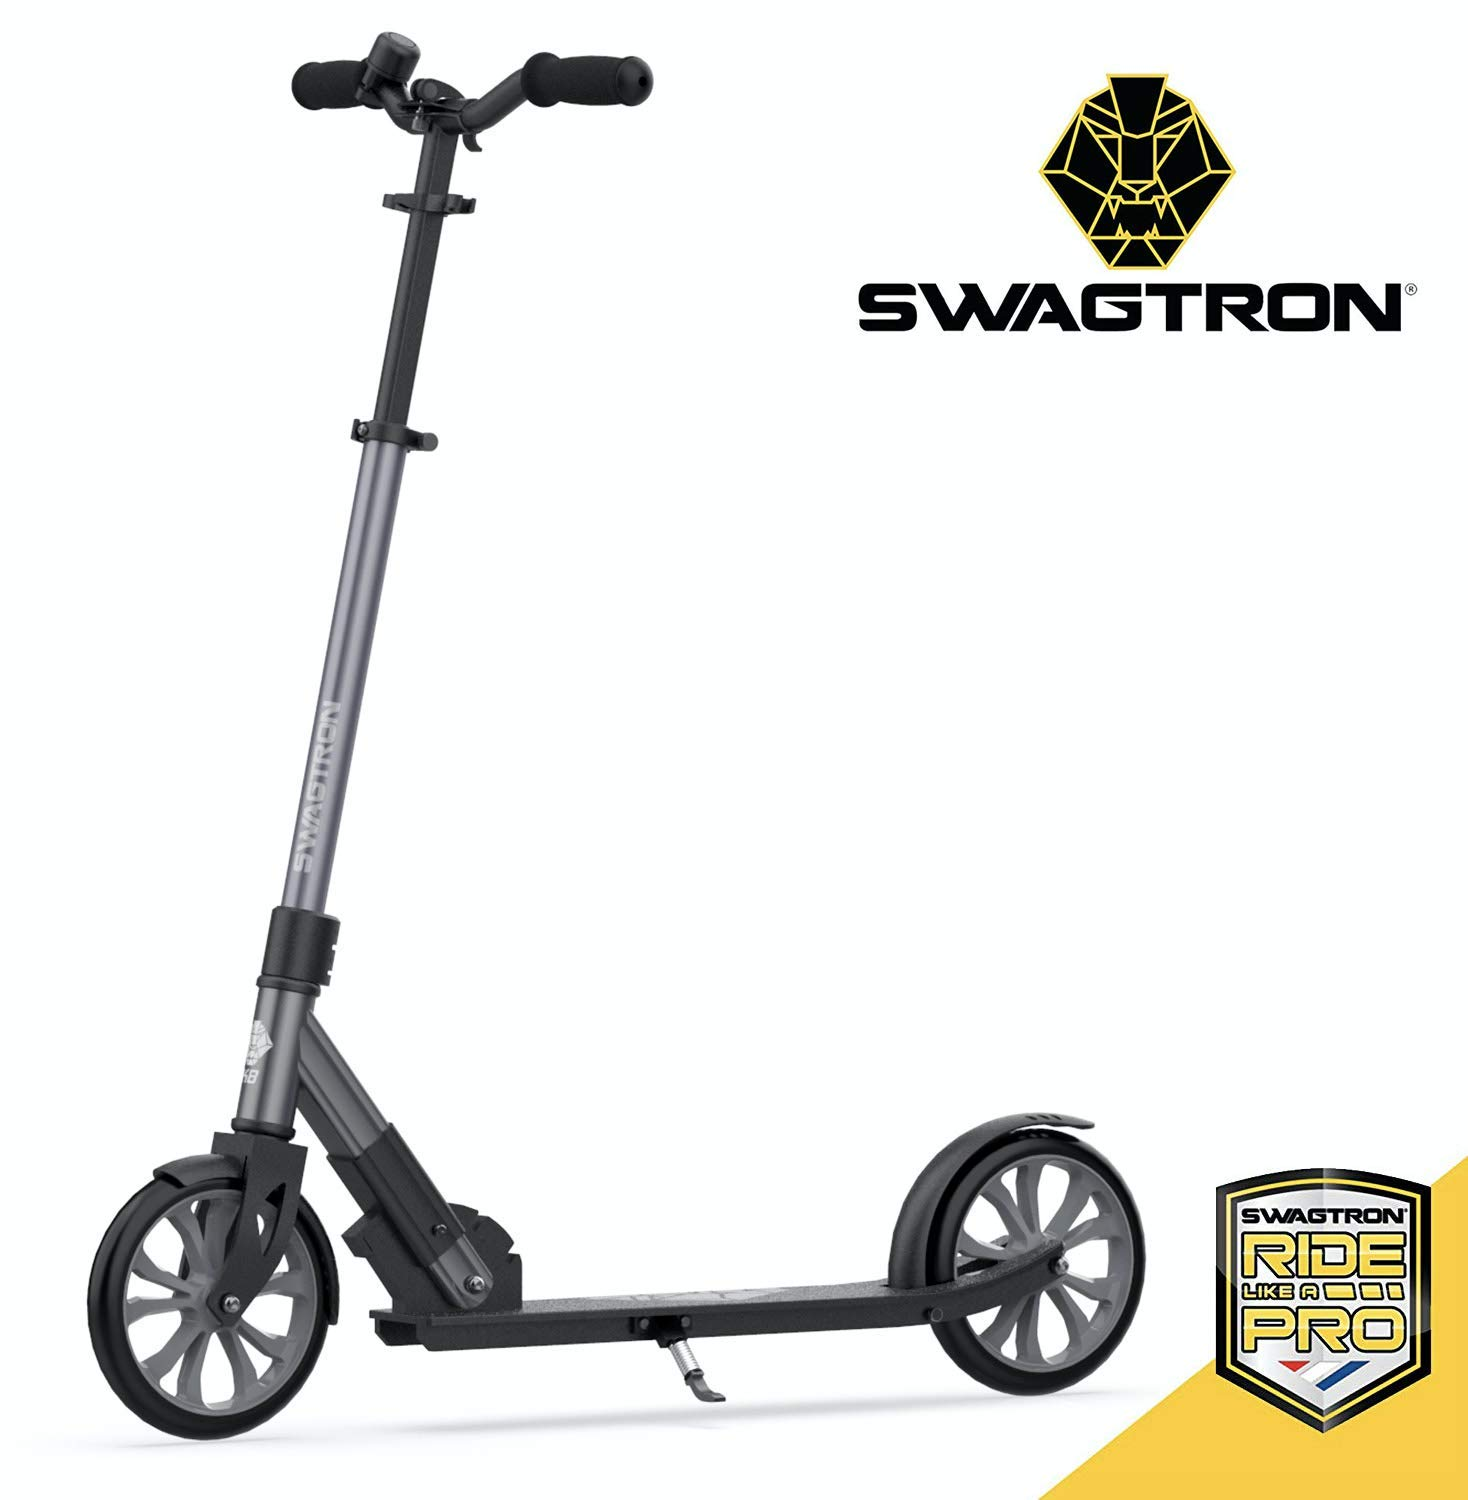 Top 10 Best Kick Scooter For Commuting - Buyer's Guide 34